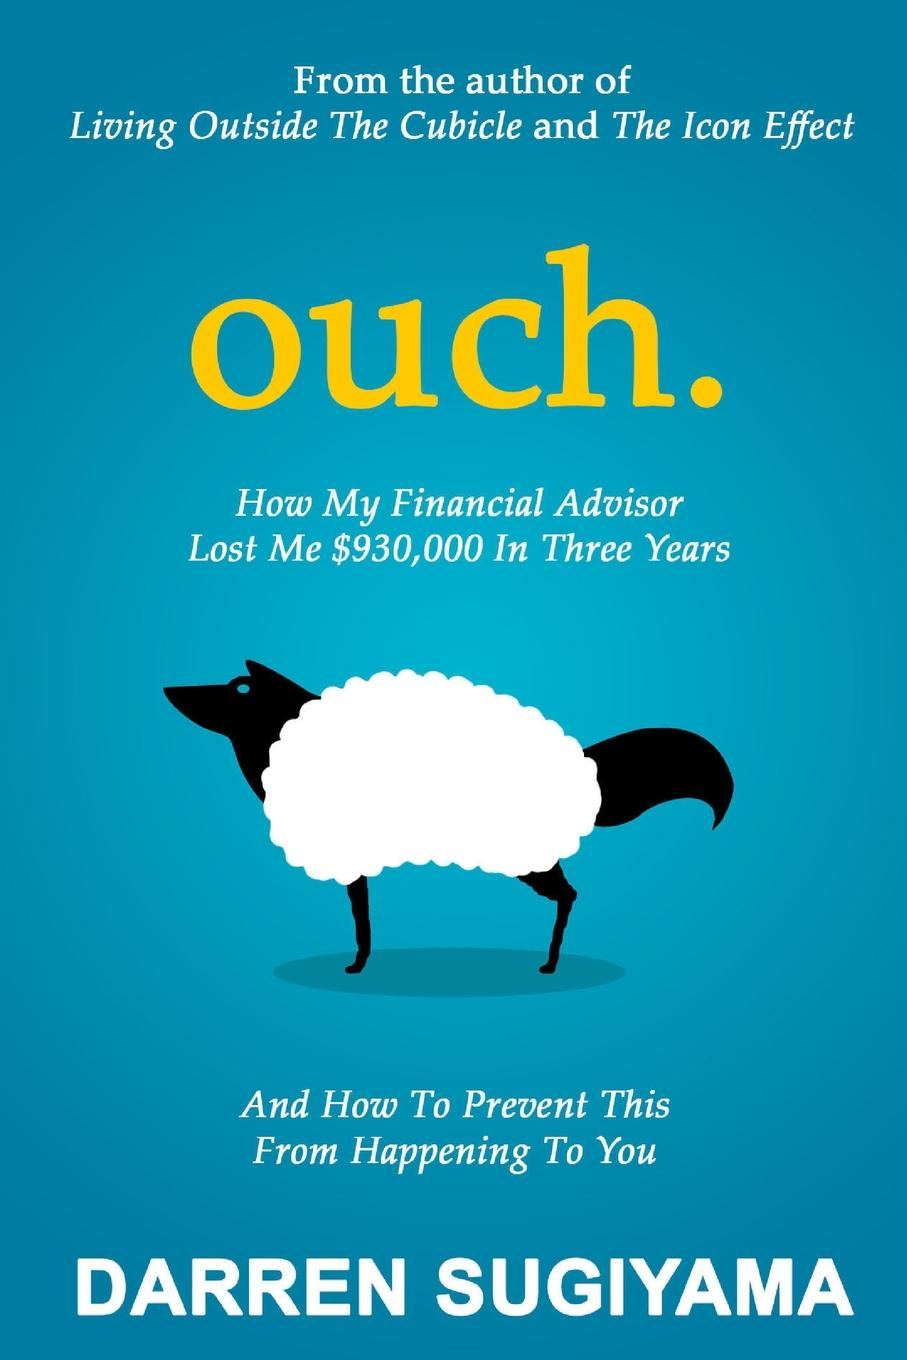 Darren Sugiyama OUCH - How My Financial Advisor Lost Me .930,000 In Three Years ivan illan m success as a financial advisor for dummies